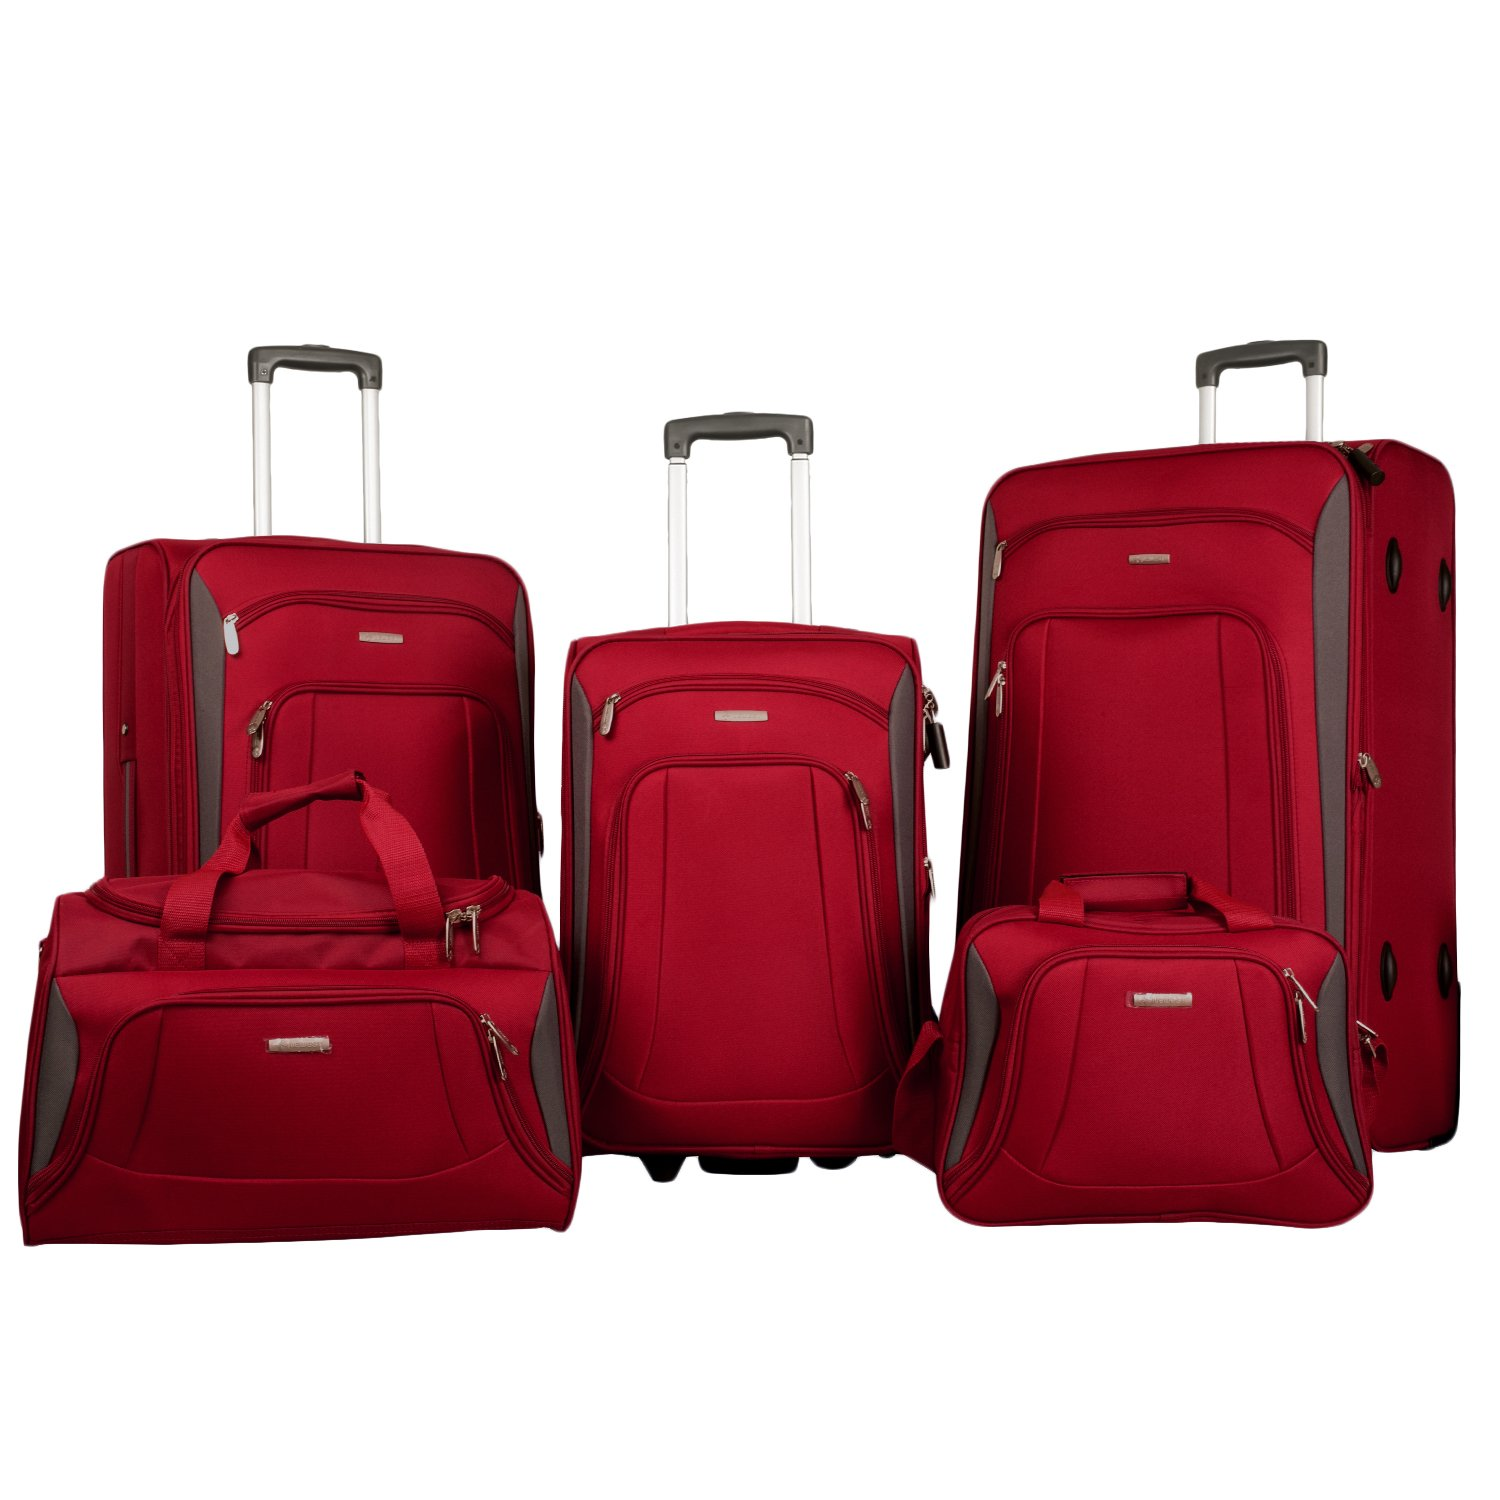 Merax Newest Softshell Deluxe Expandable Rolling Luggage Set,  Red/Black,  5 Piece